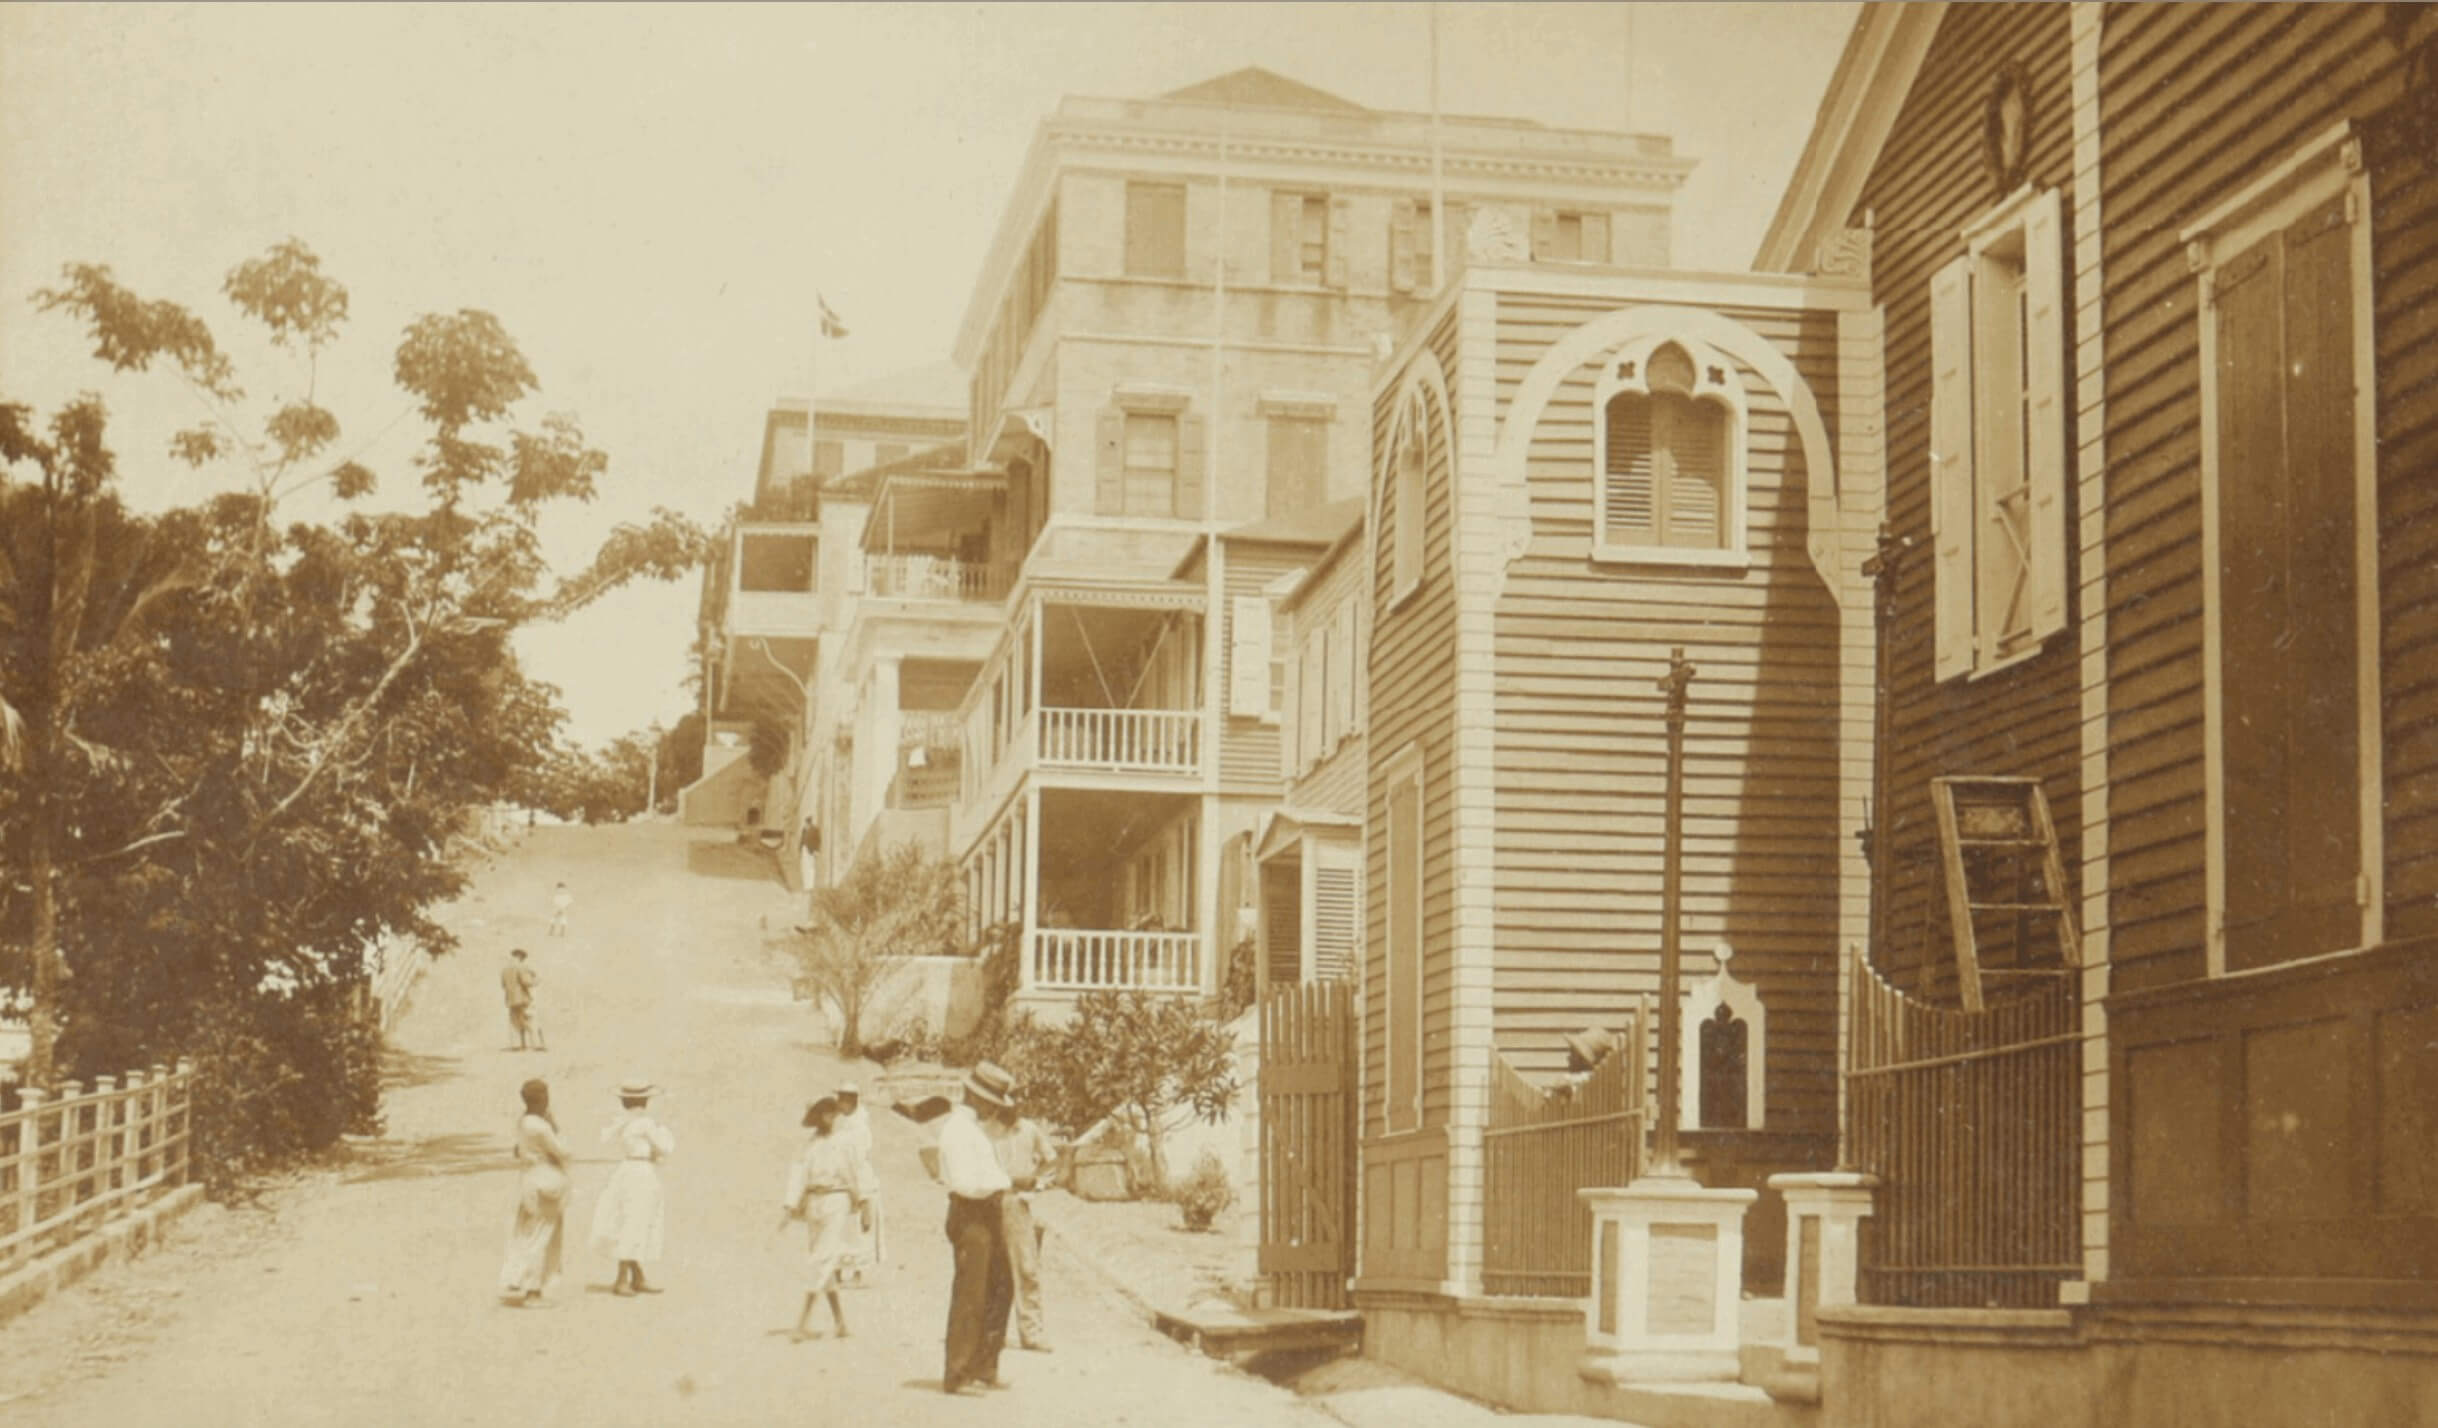 Apollo Theatre, St. Thomas, Danish West Indies, US Virgin Islands